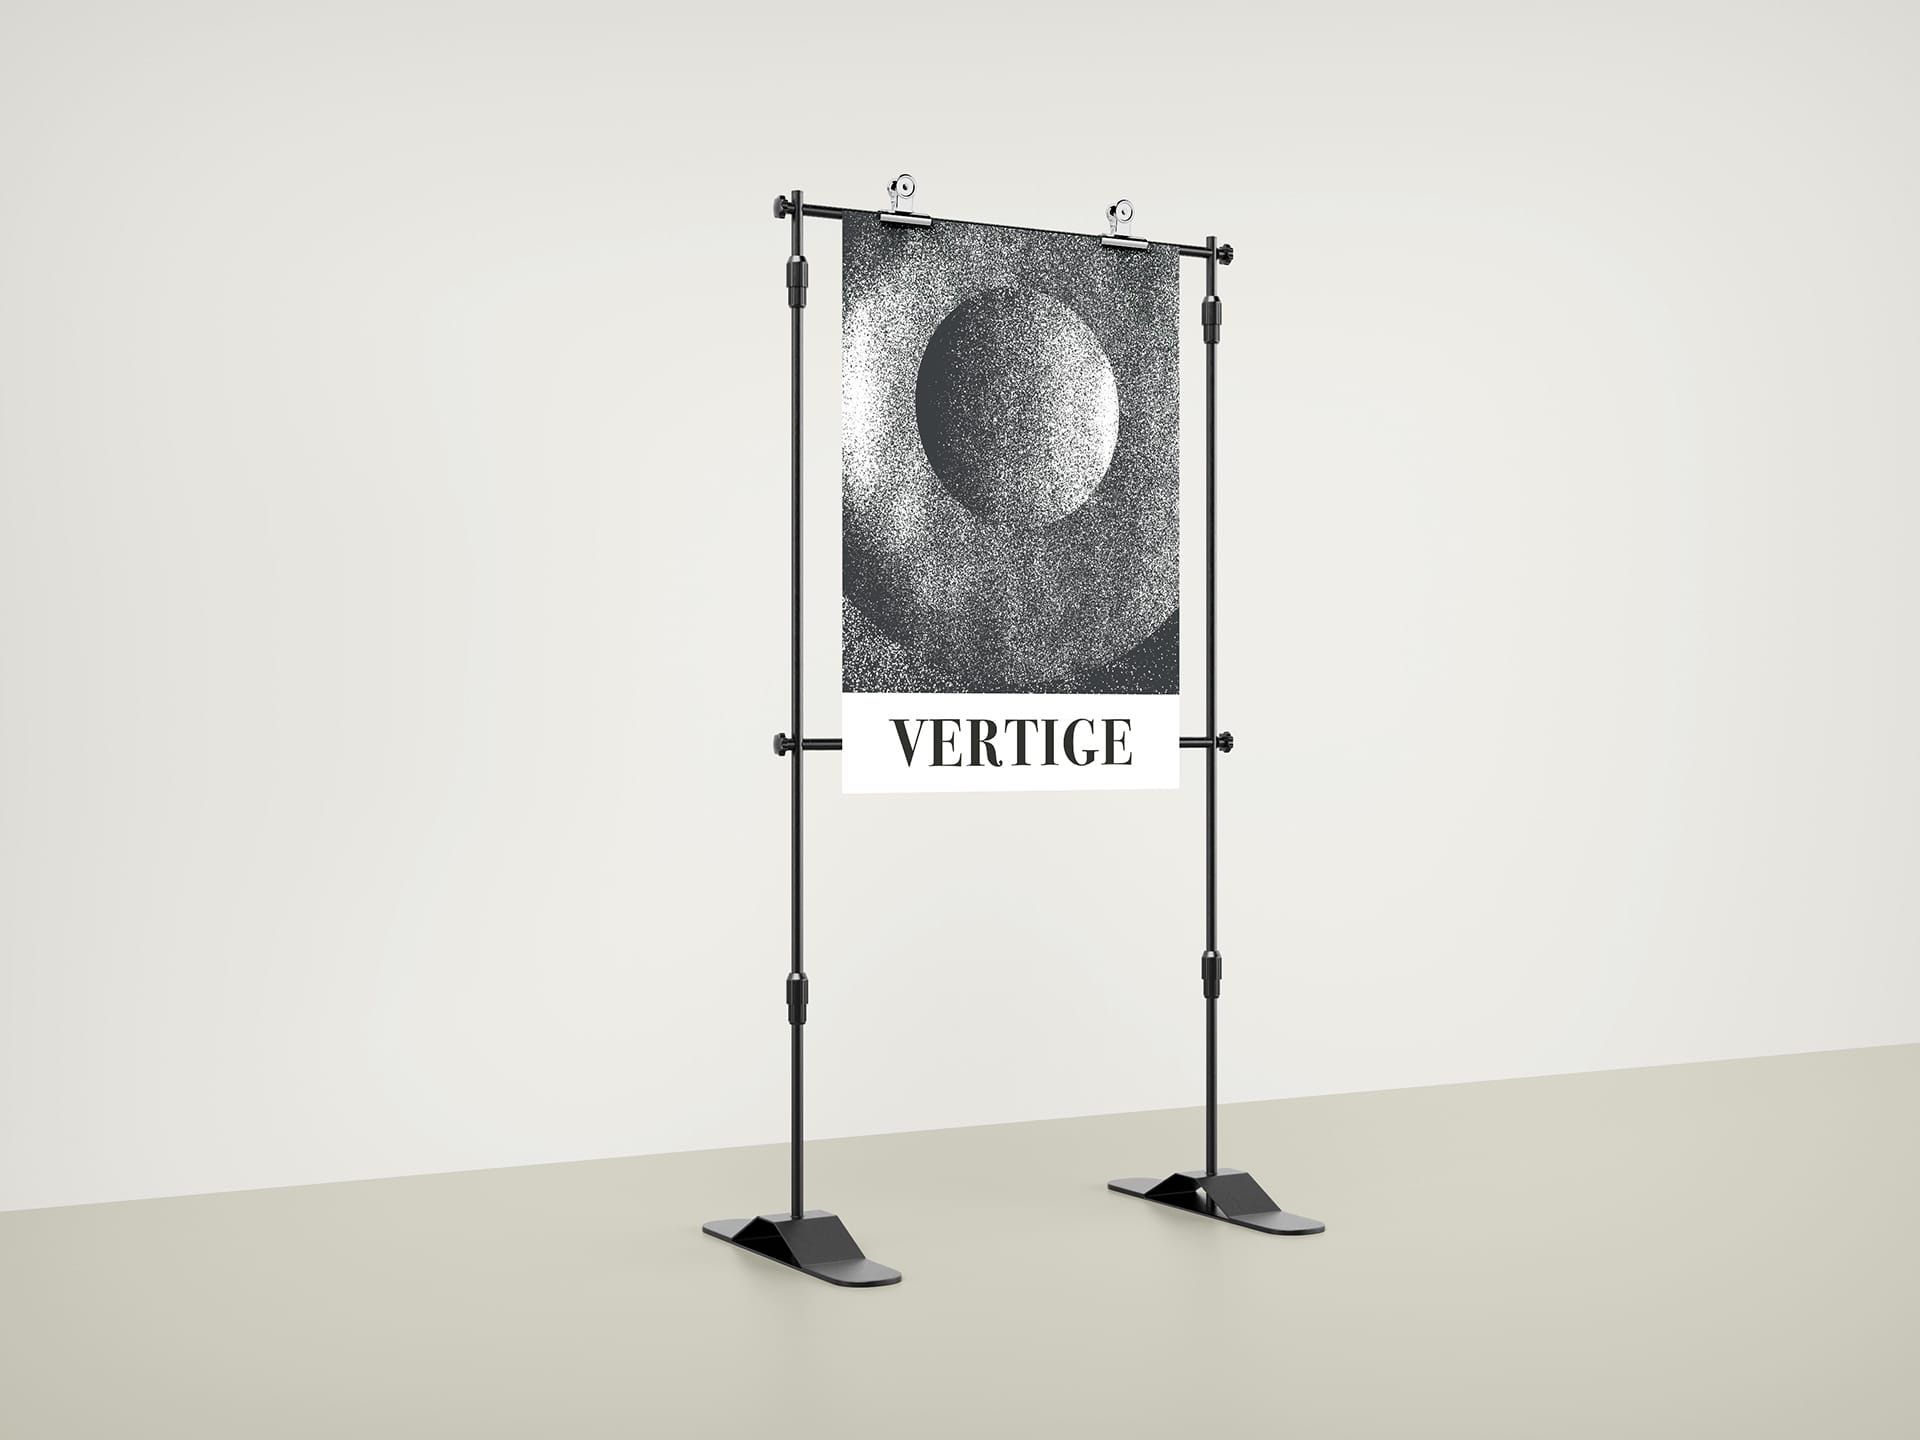 poster-vertige-3-medium